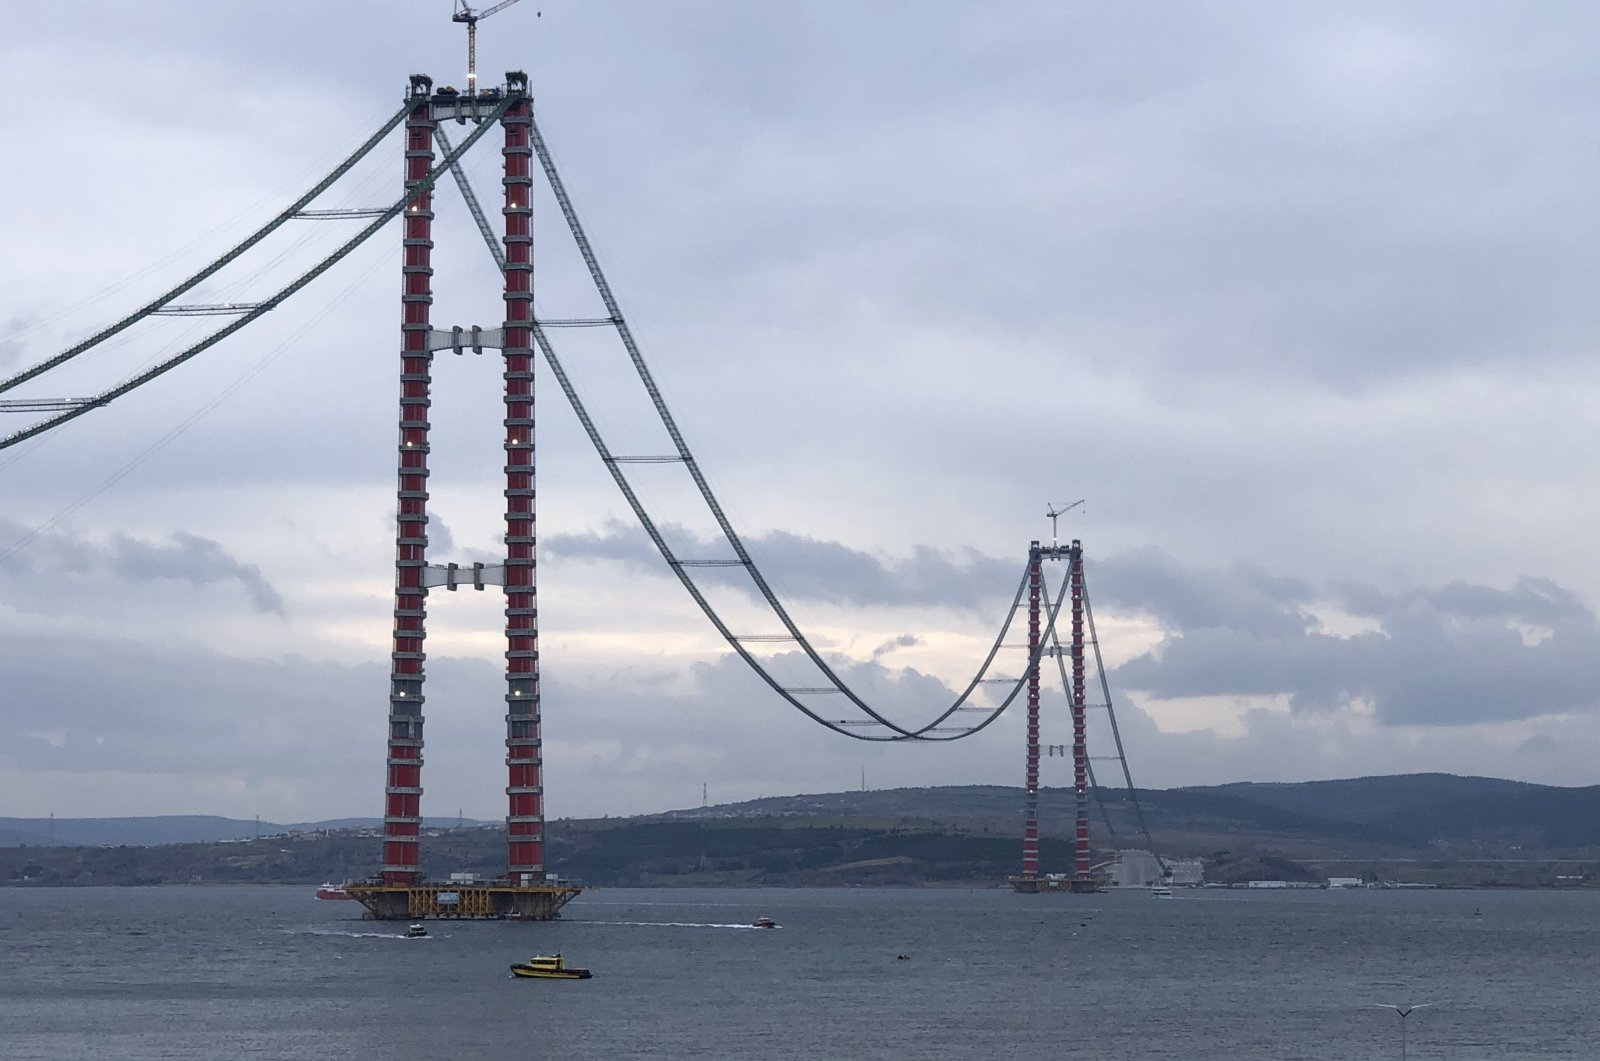 The Çanakkale Bridge, currently under construction, will connect Europe and Asia across the Dardanelles, in Çanakkale, northwestern Turkey Jan. 26, 2021. (Sabah Photo)